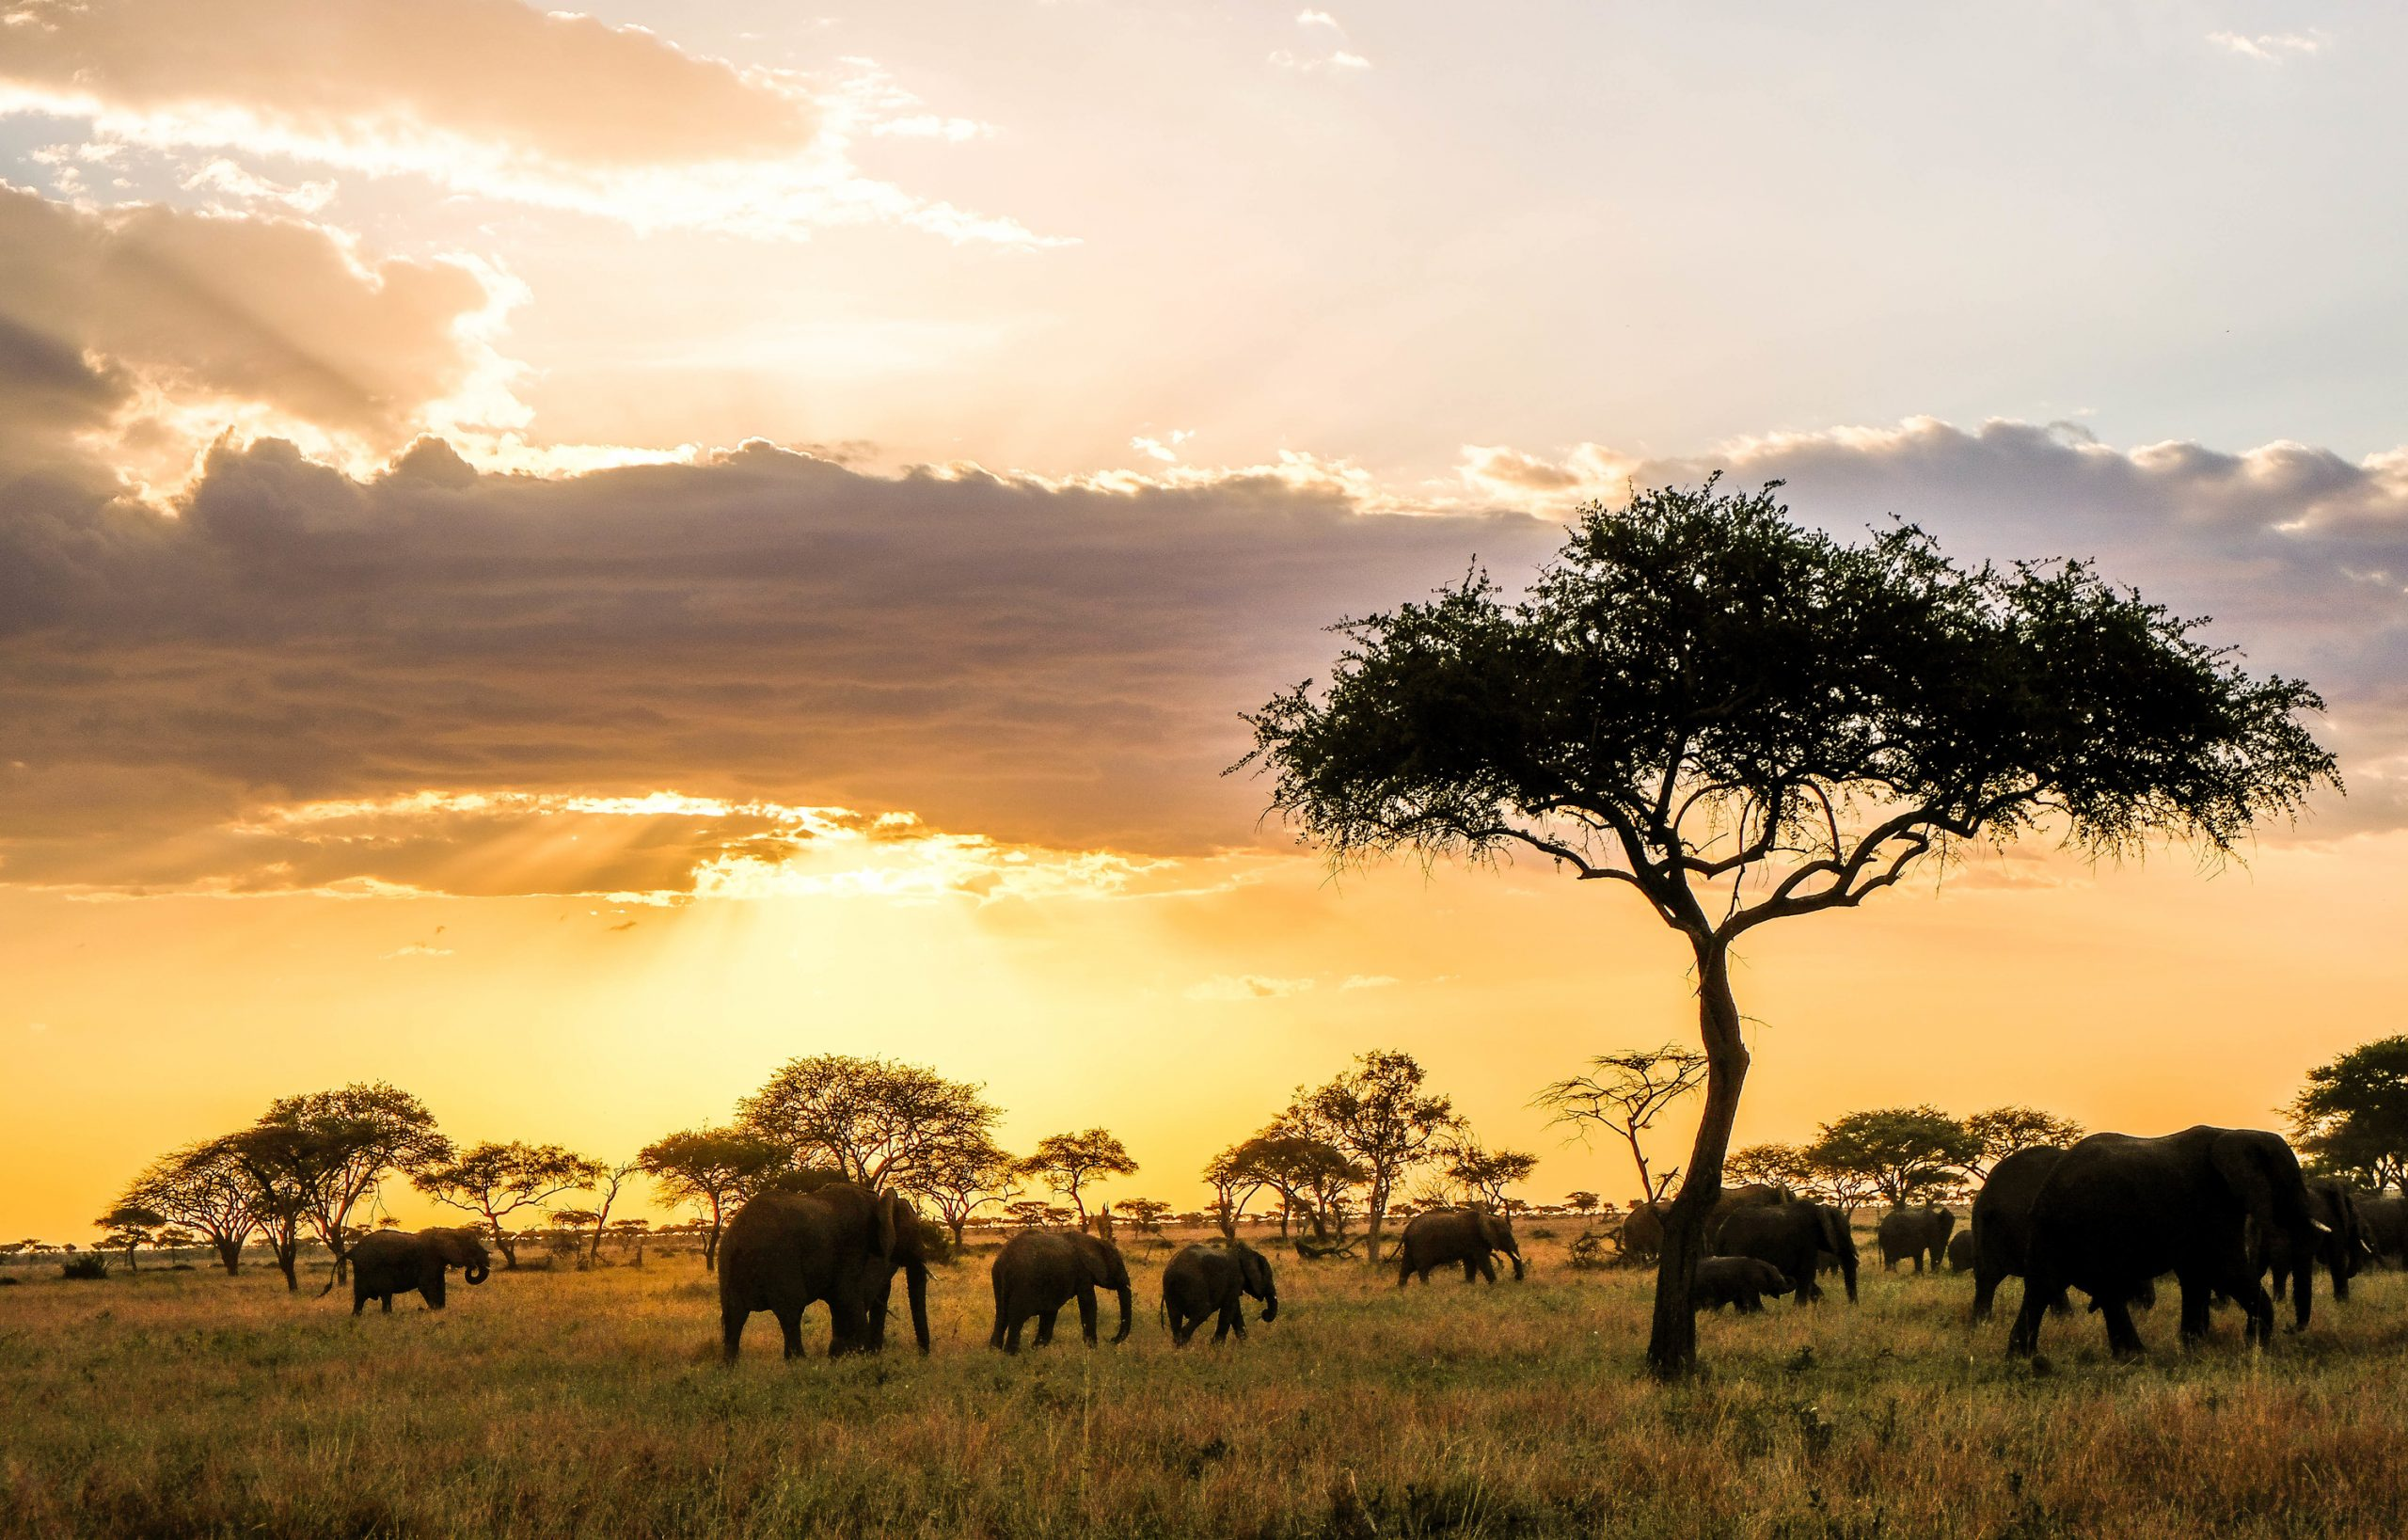 A group of elephants in the wild at sunset